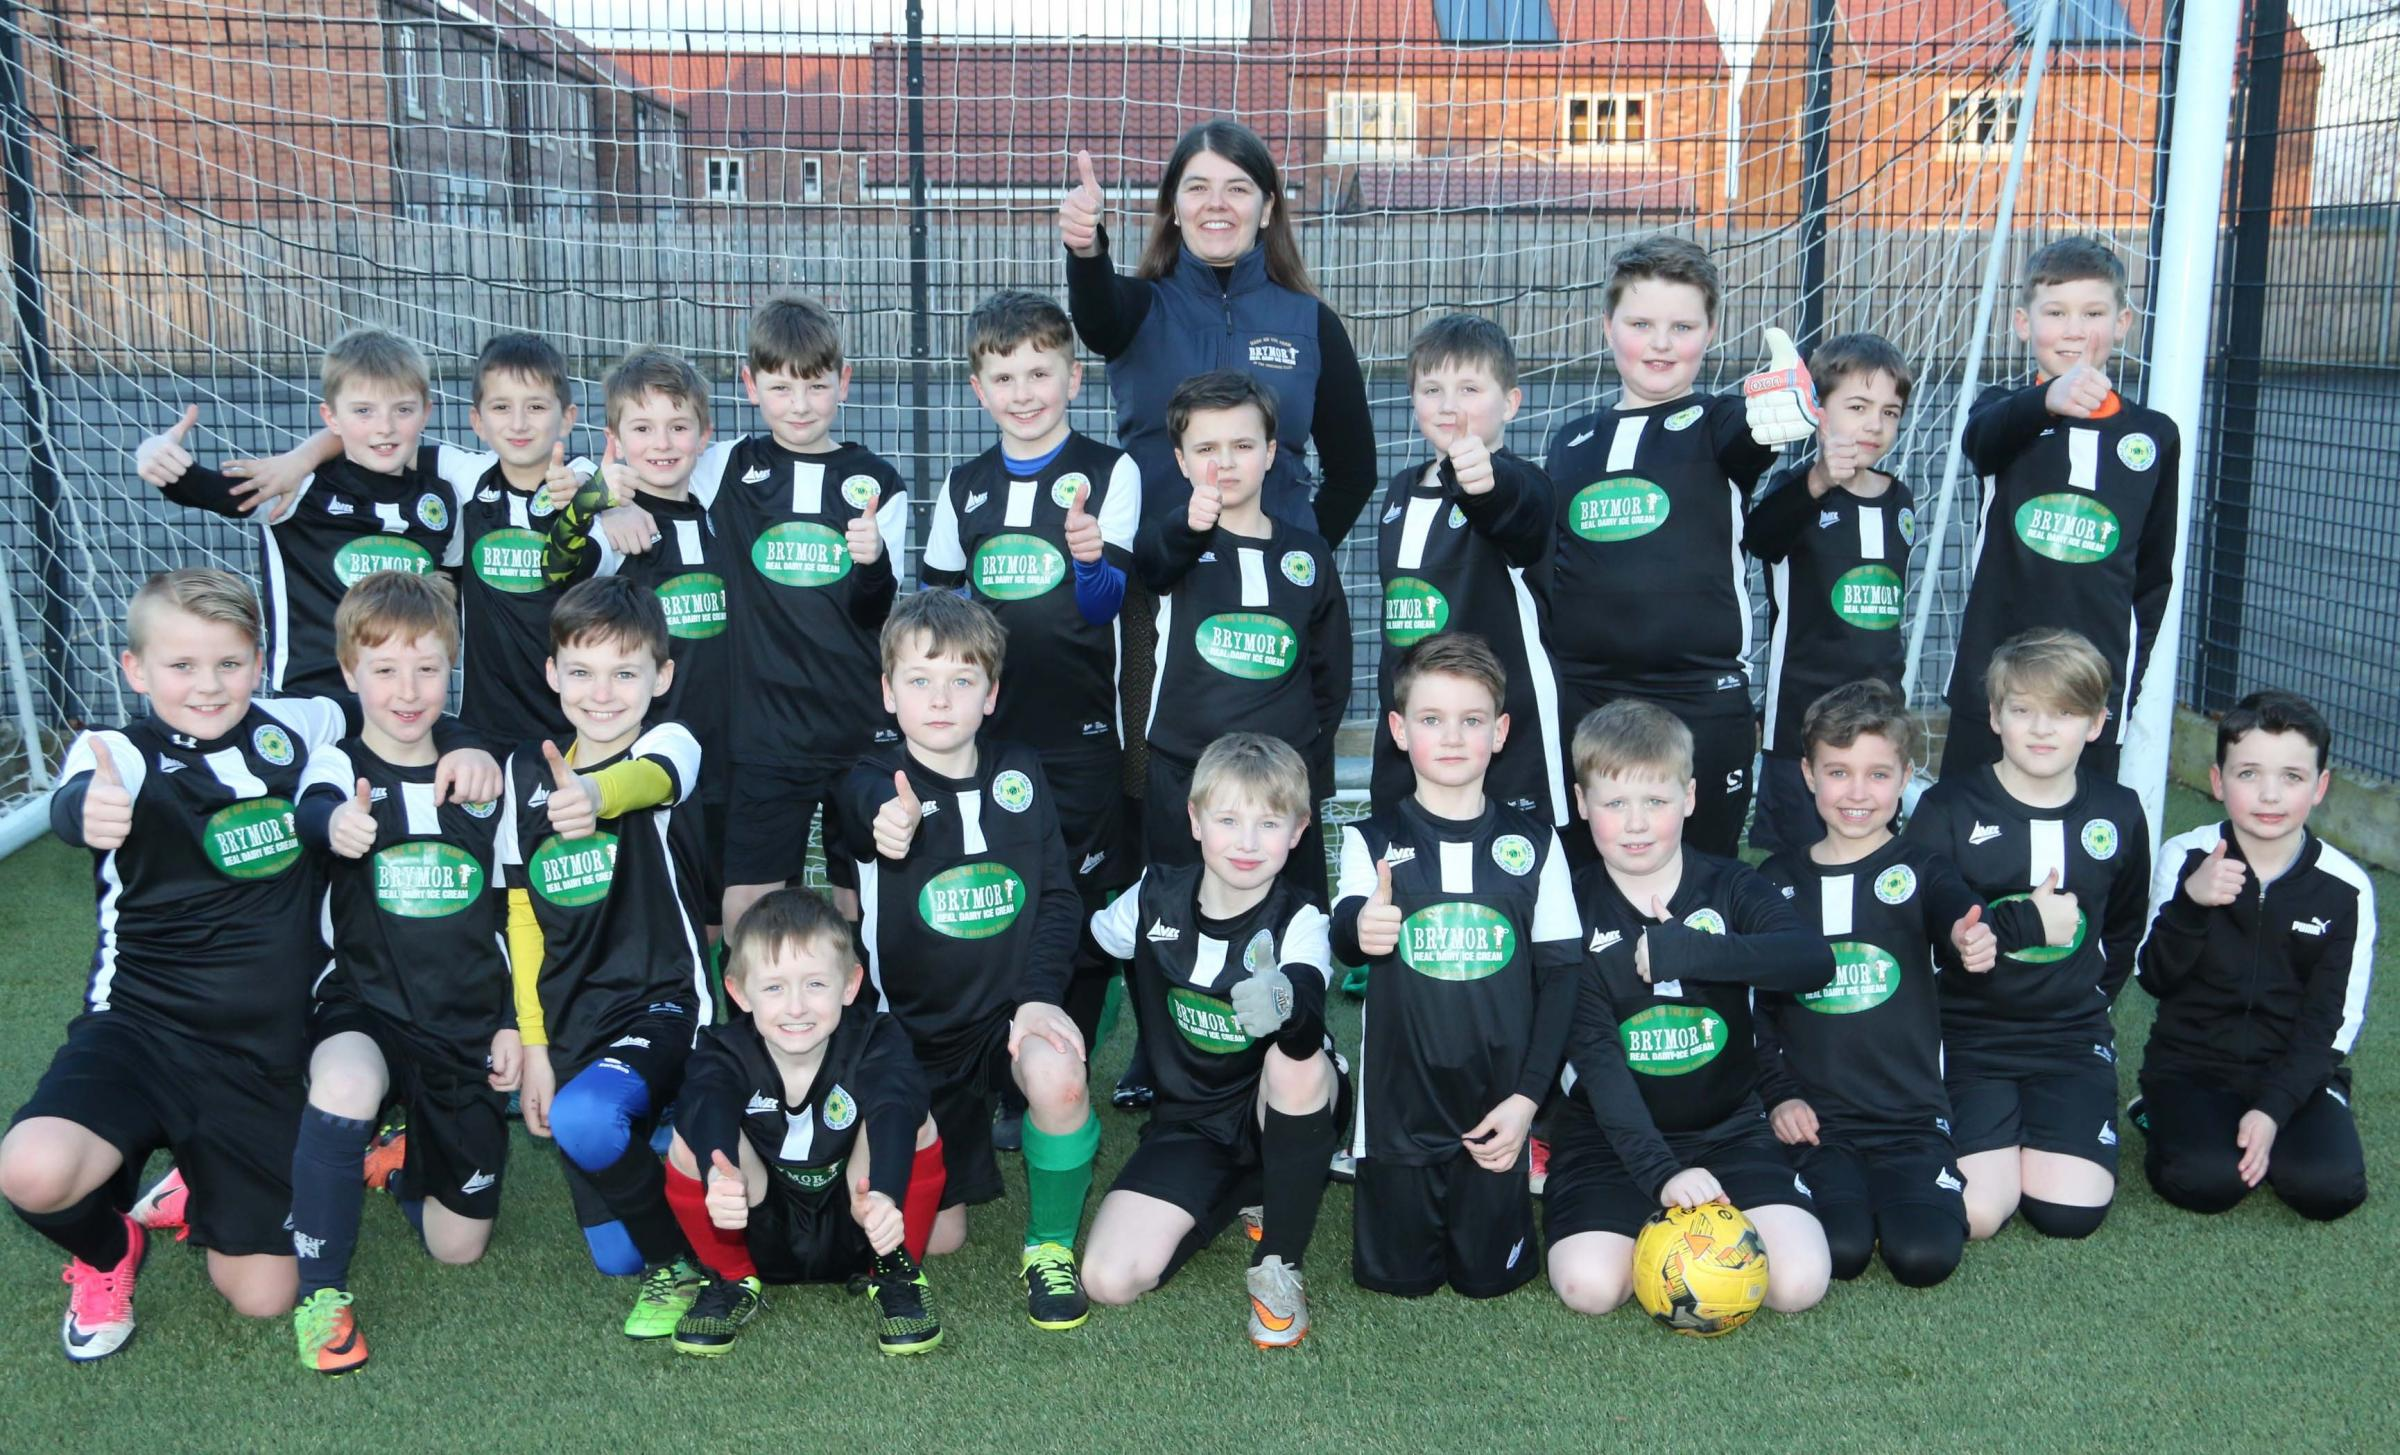 Brymoor Ice Cream is sweet sponsorship deal for Bedale Junior Football Club